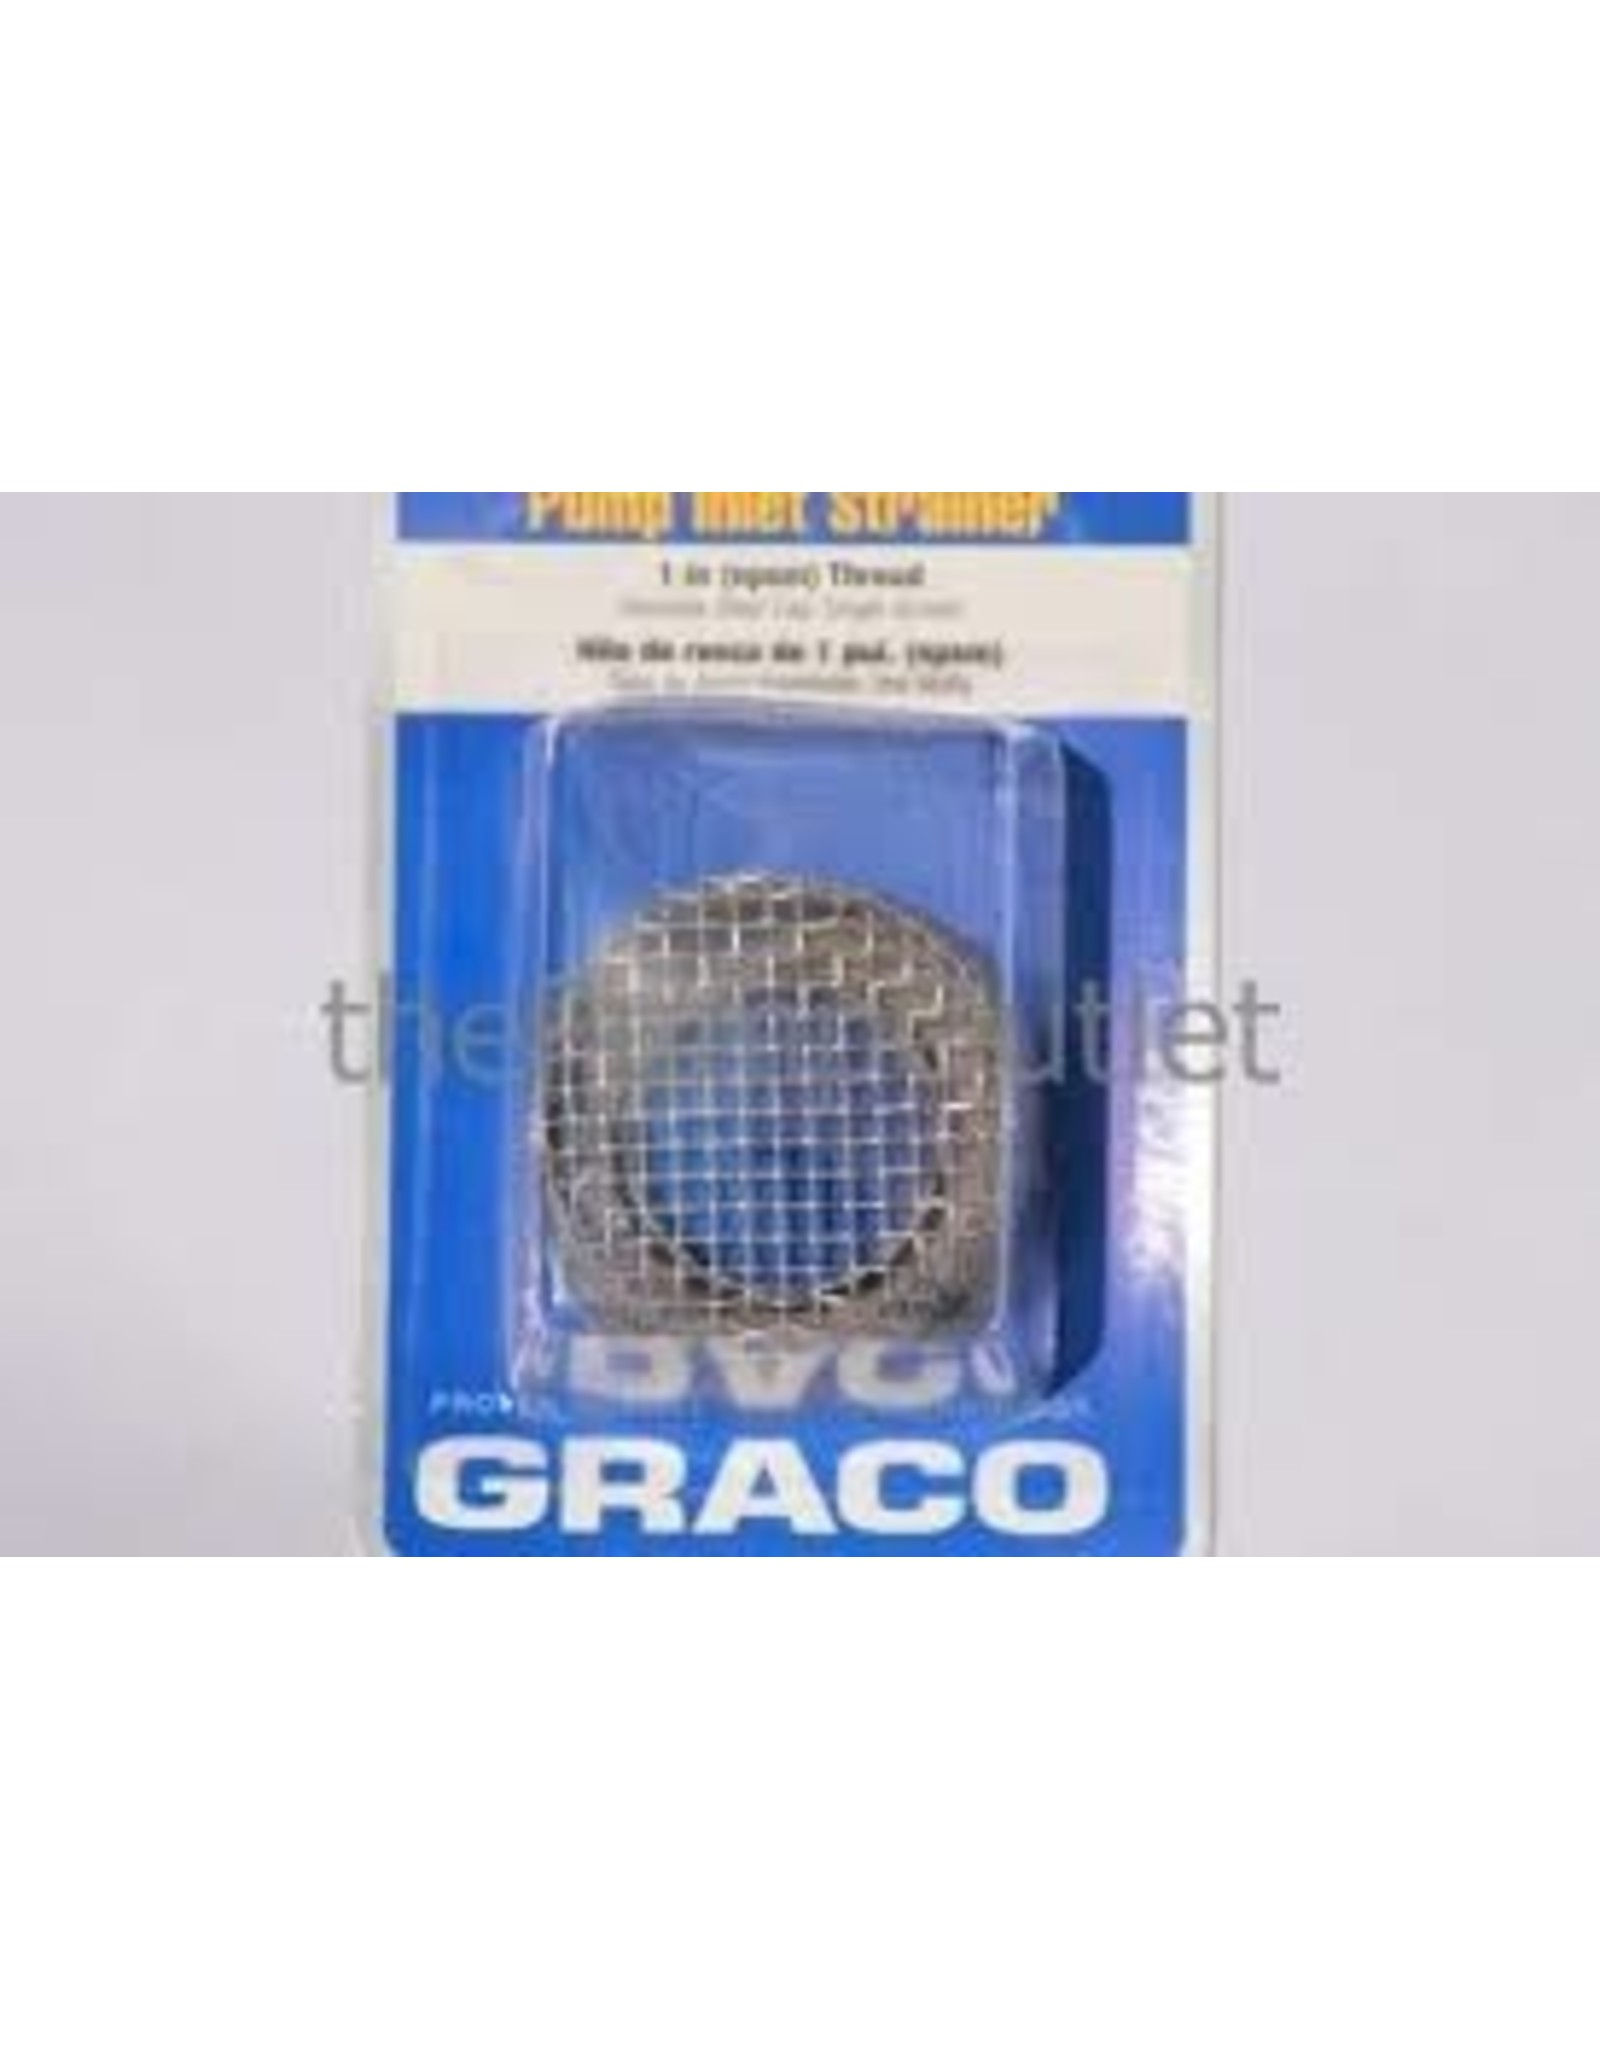 Graco 189920 Rock Guard OEM Carded